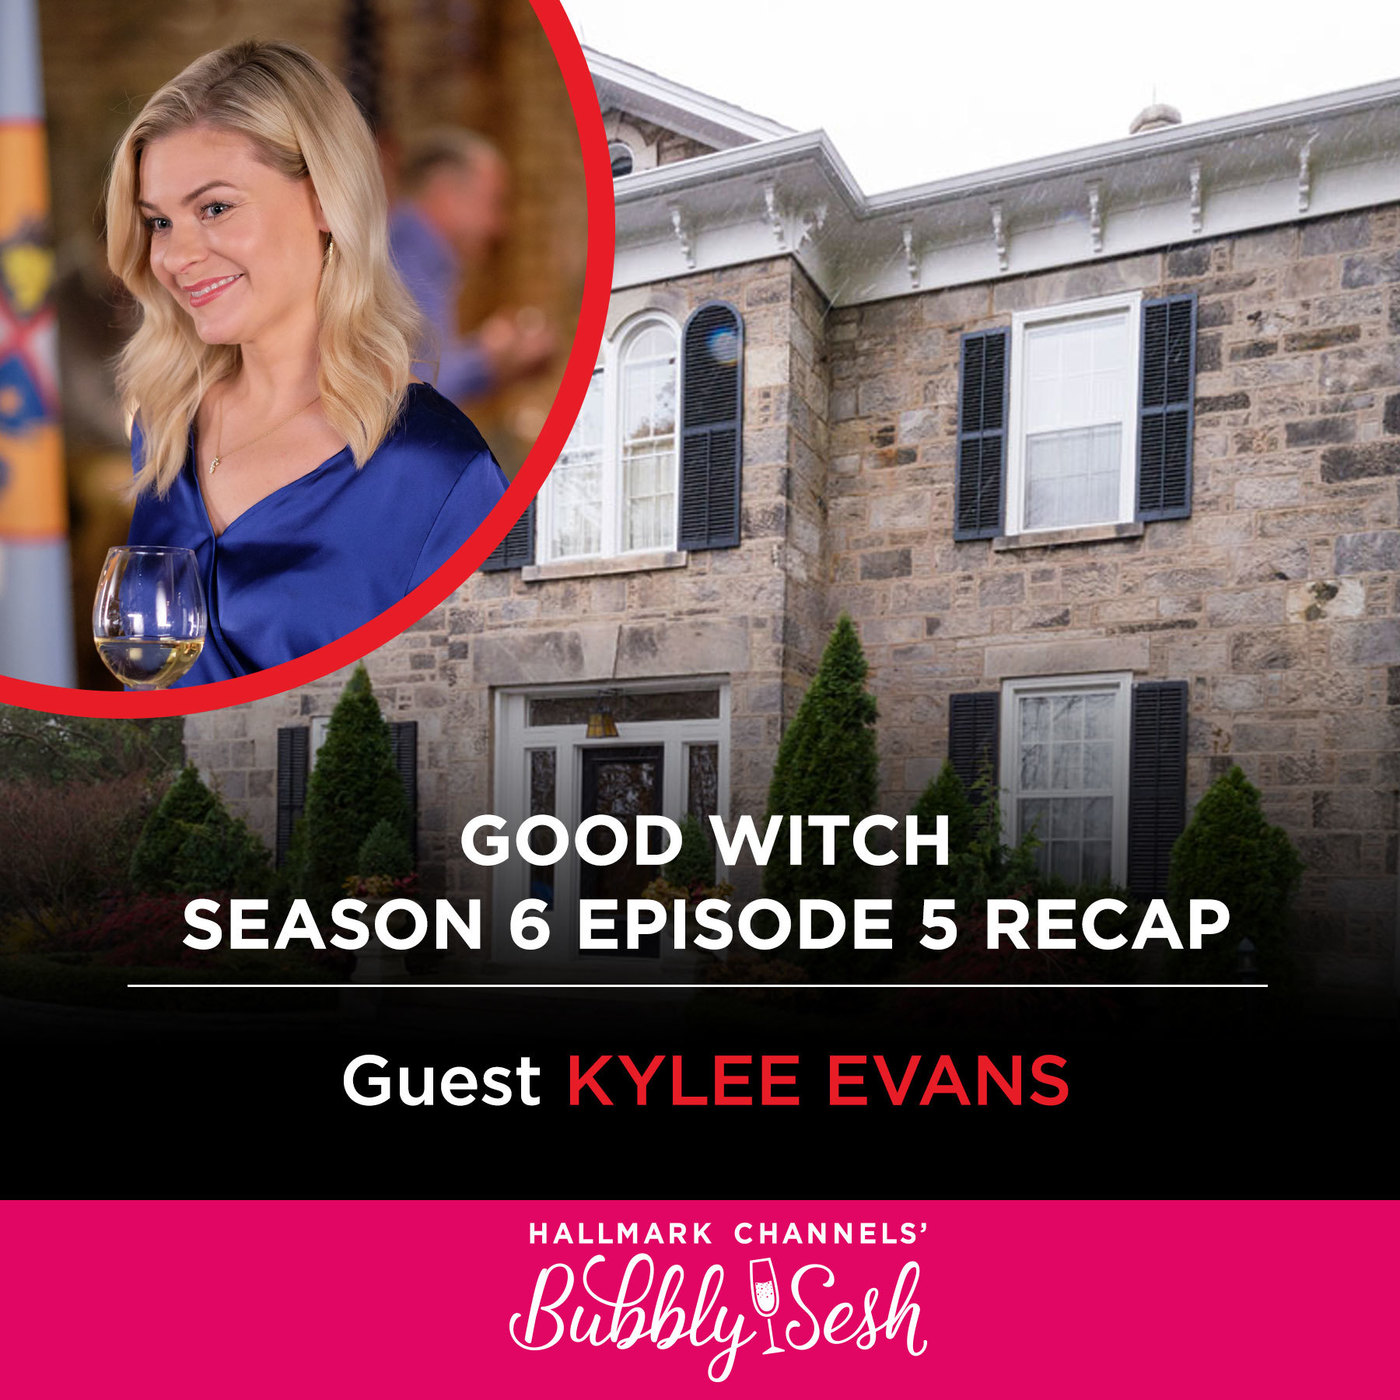 Good Witch Season 6 Episode 5 Recap with Guest Kylee Evans